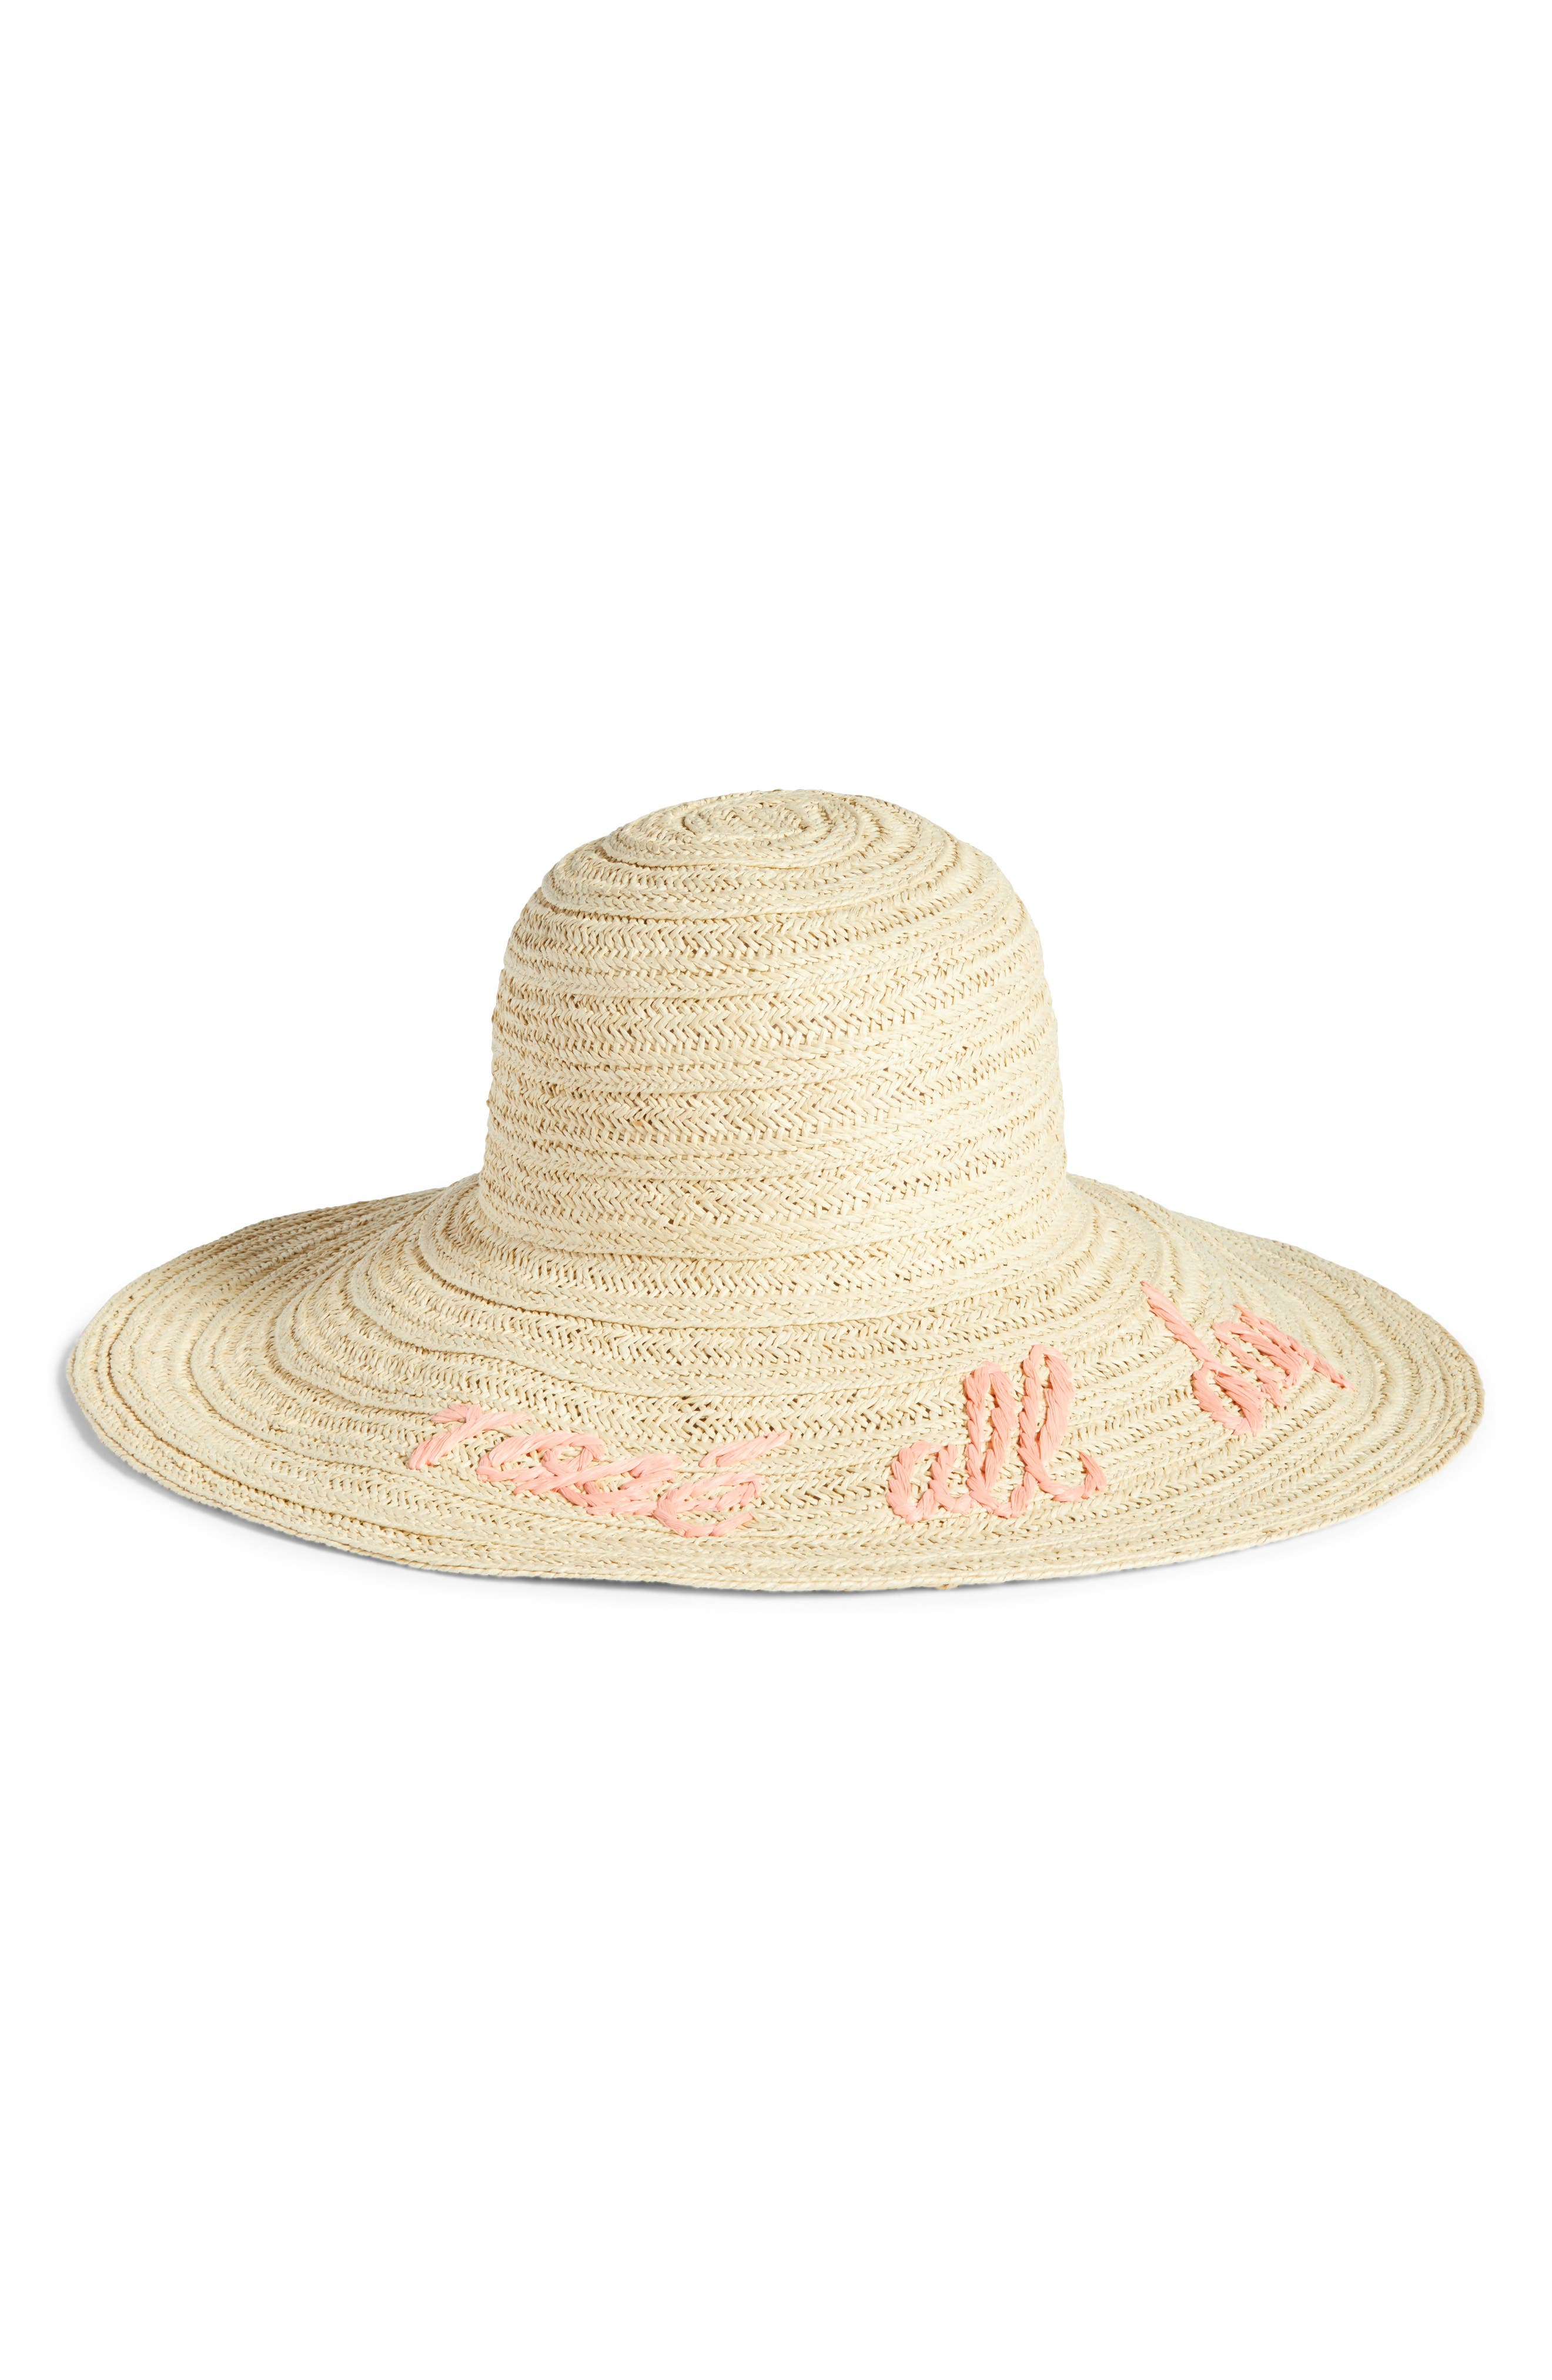 Wordplay Floppy Straw Sun Hat,                             Main thumbnail 3, color,